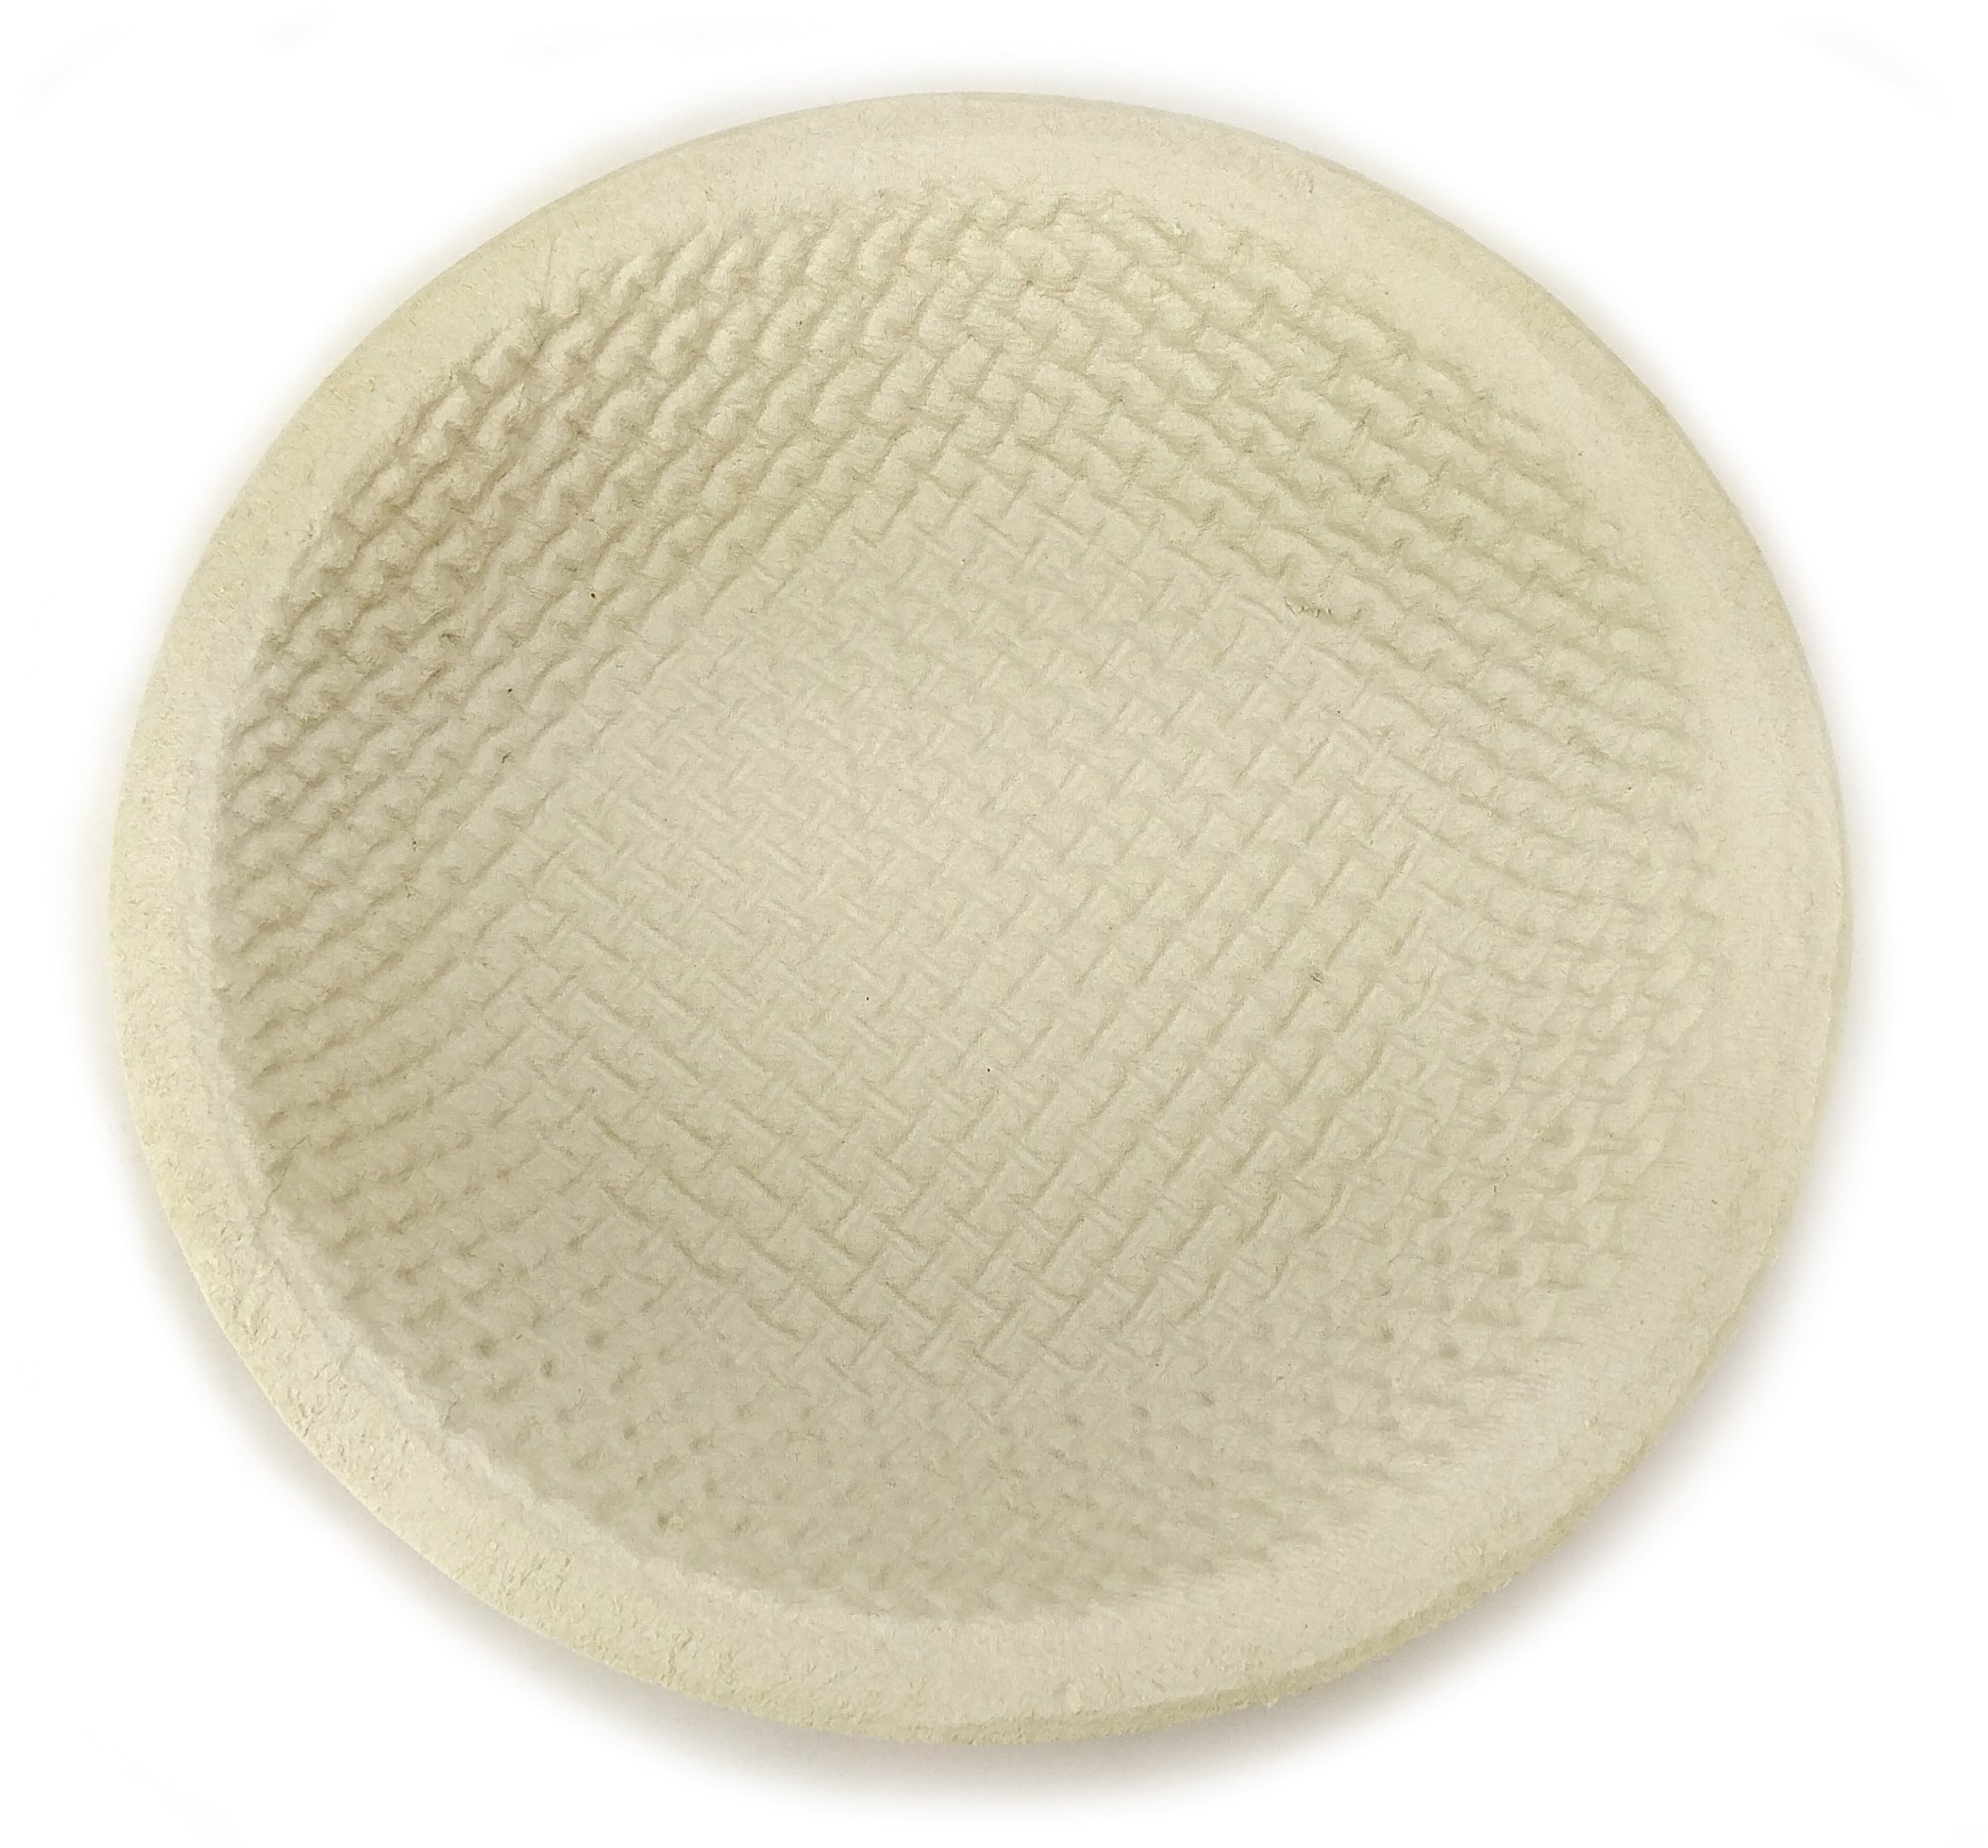 Breadtopia Wood Pulp Proofing Baskets (Weave)